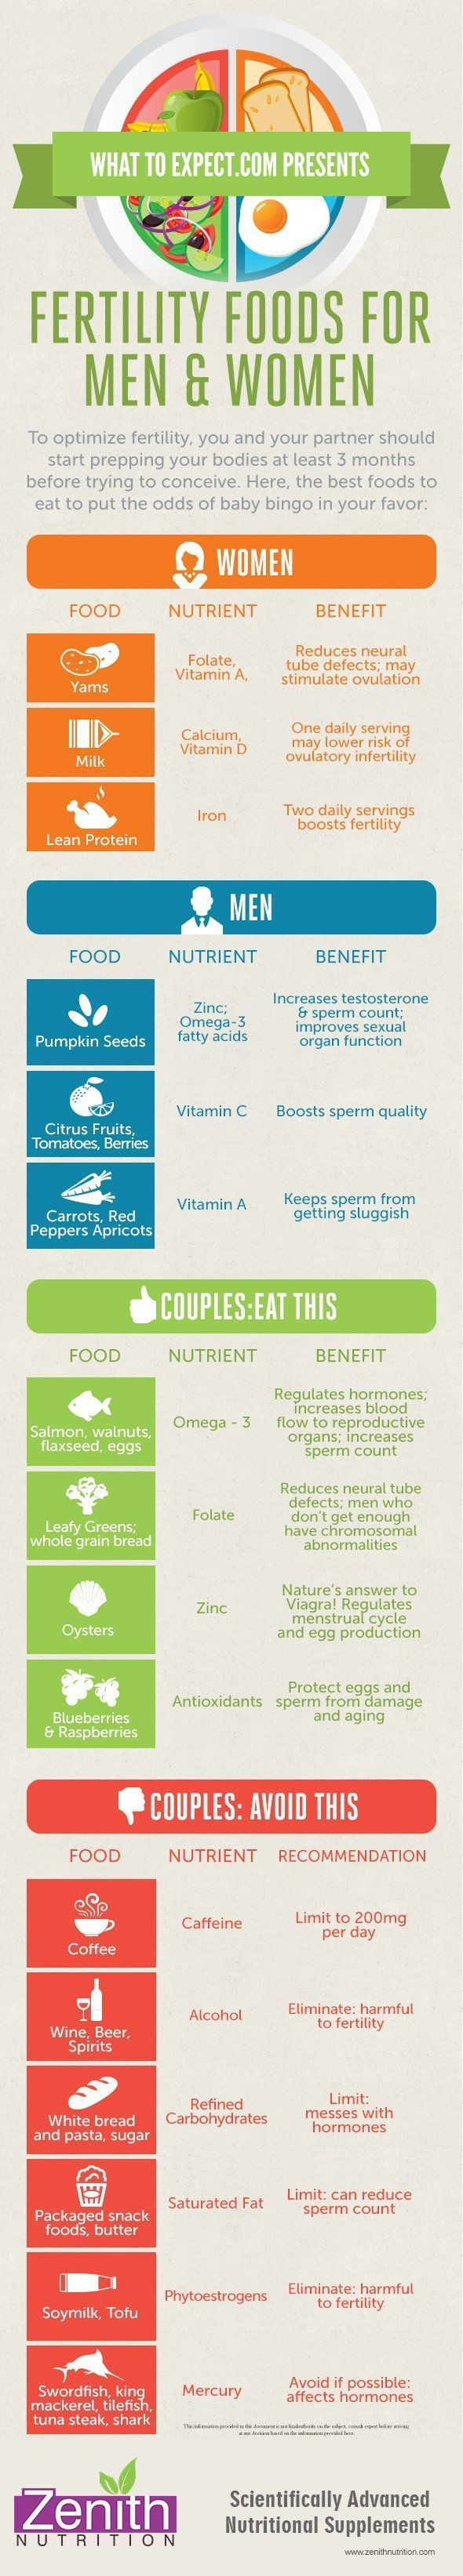 Fertility Food For Men & Women and Couples. Foods to be avoided that effect fertility. Best supplements from Zenith Nutrition! #animals #FF #followback #instafollow #animals #vitaminD